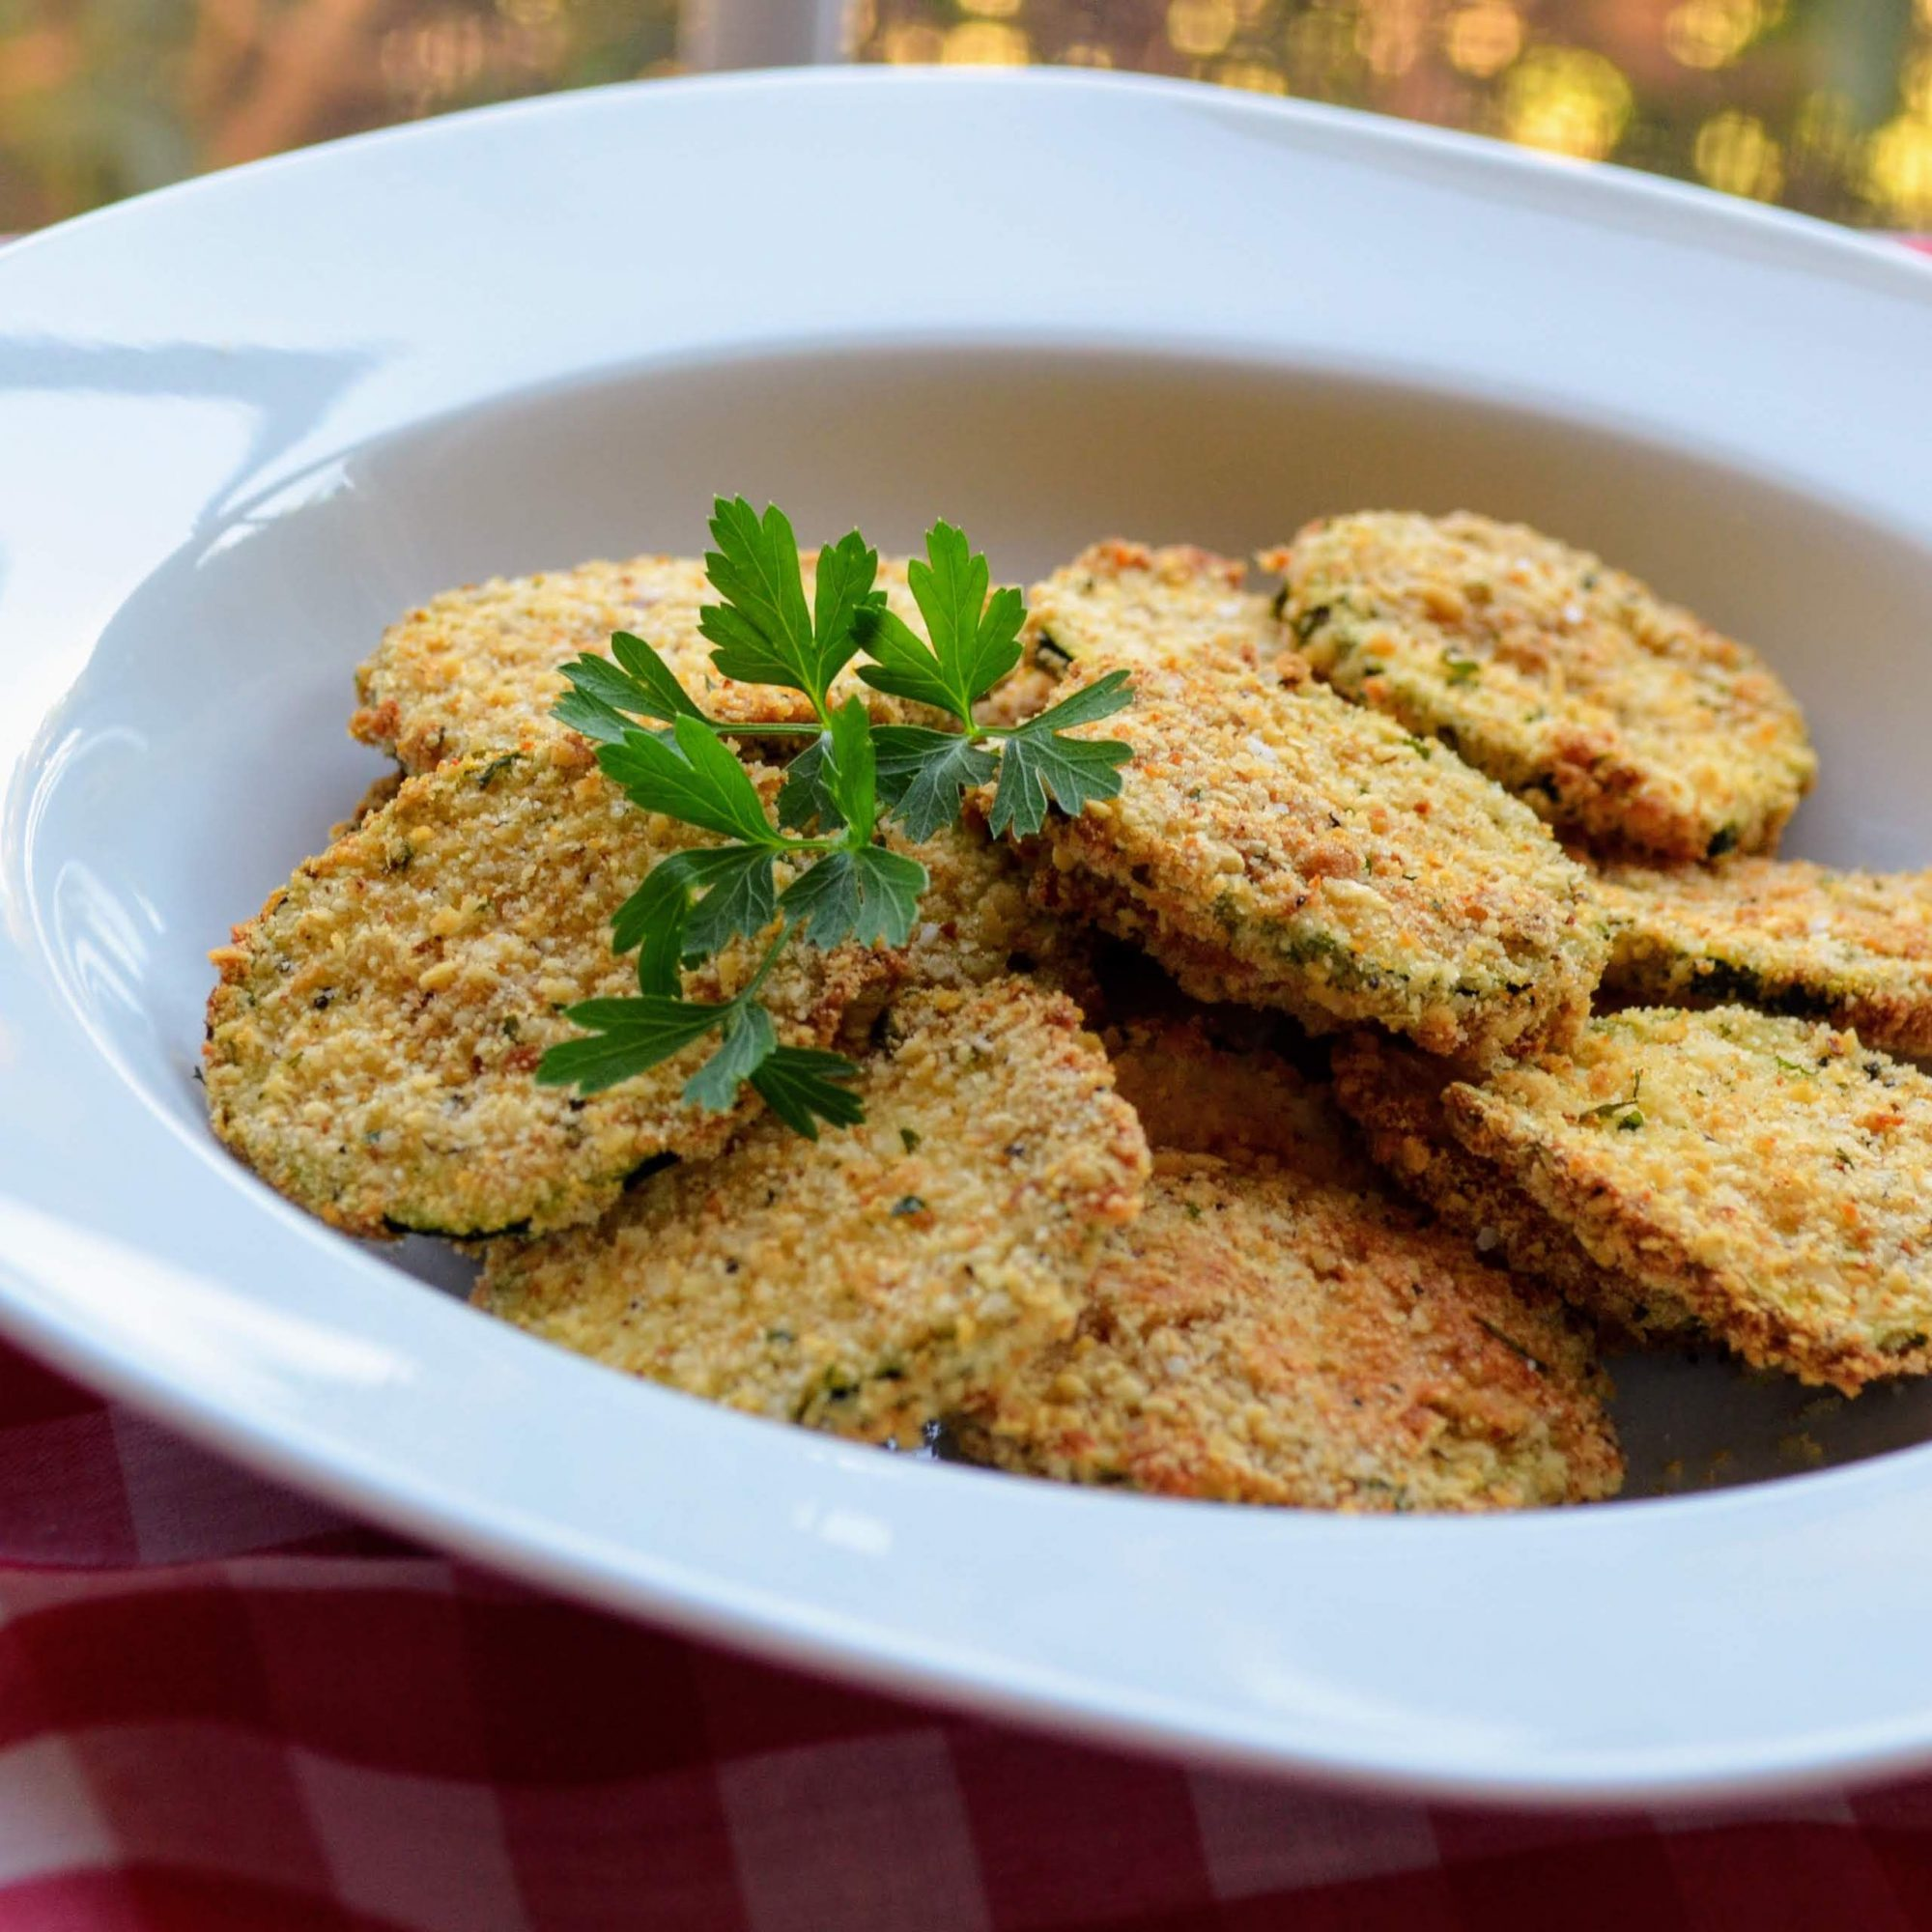 air-fried zucchini chips in a white bowl